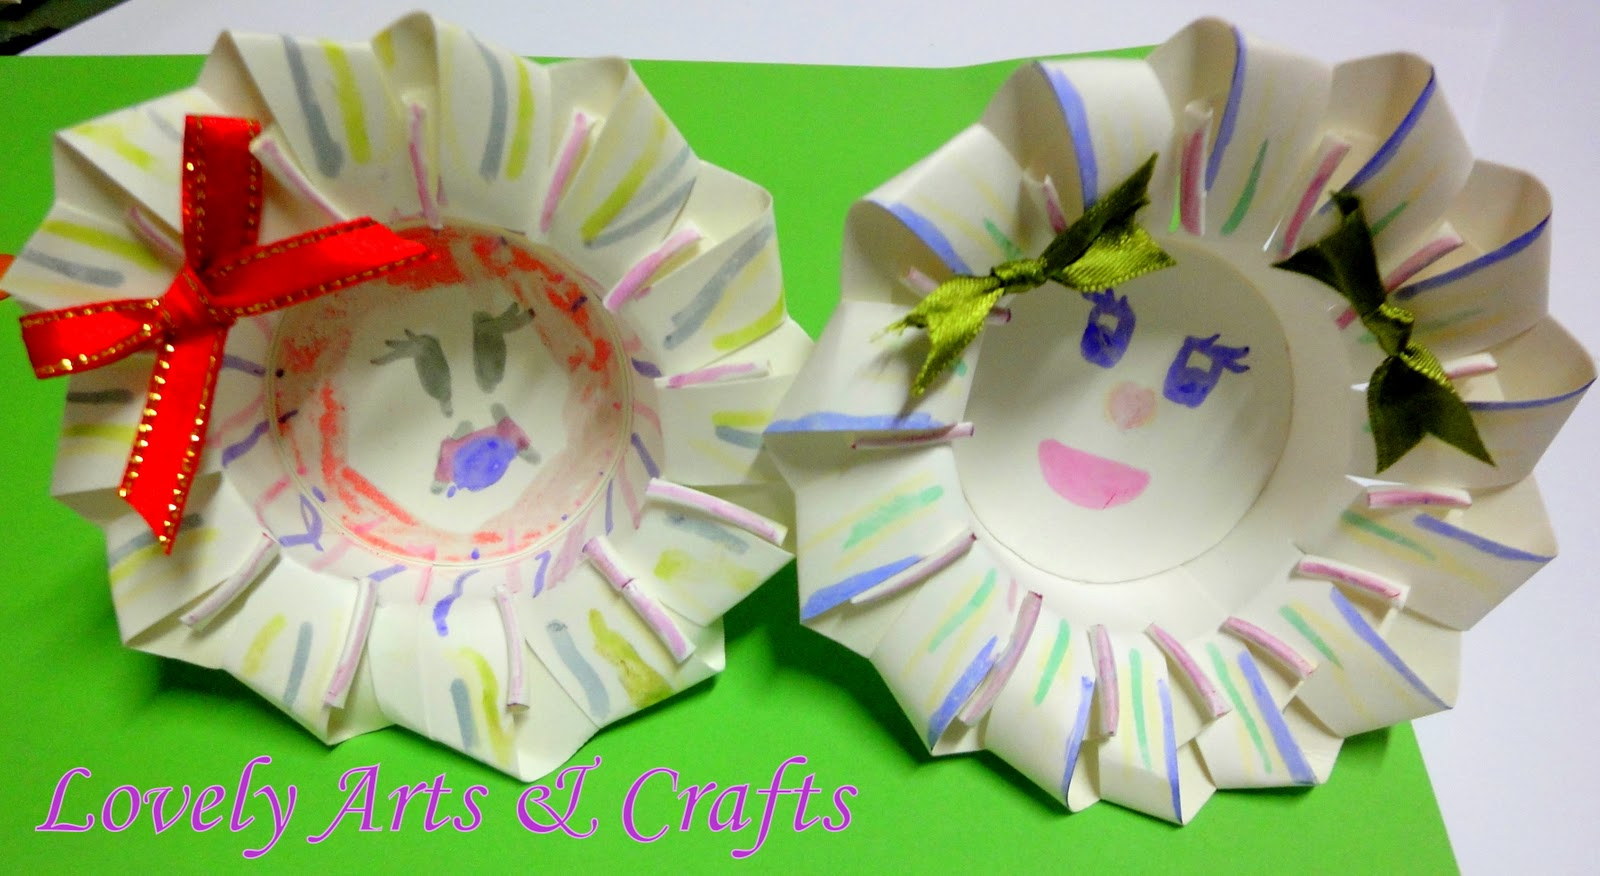 Lovely Arts Crafts V 1 Paper Cup Flowers